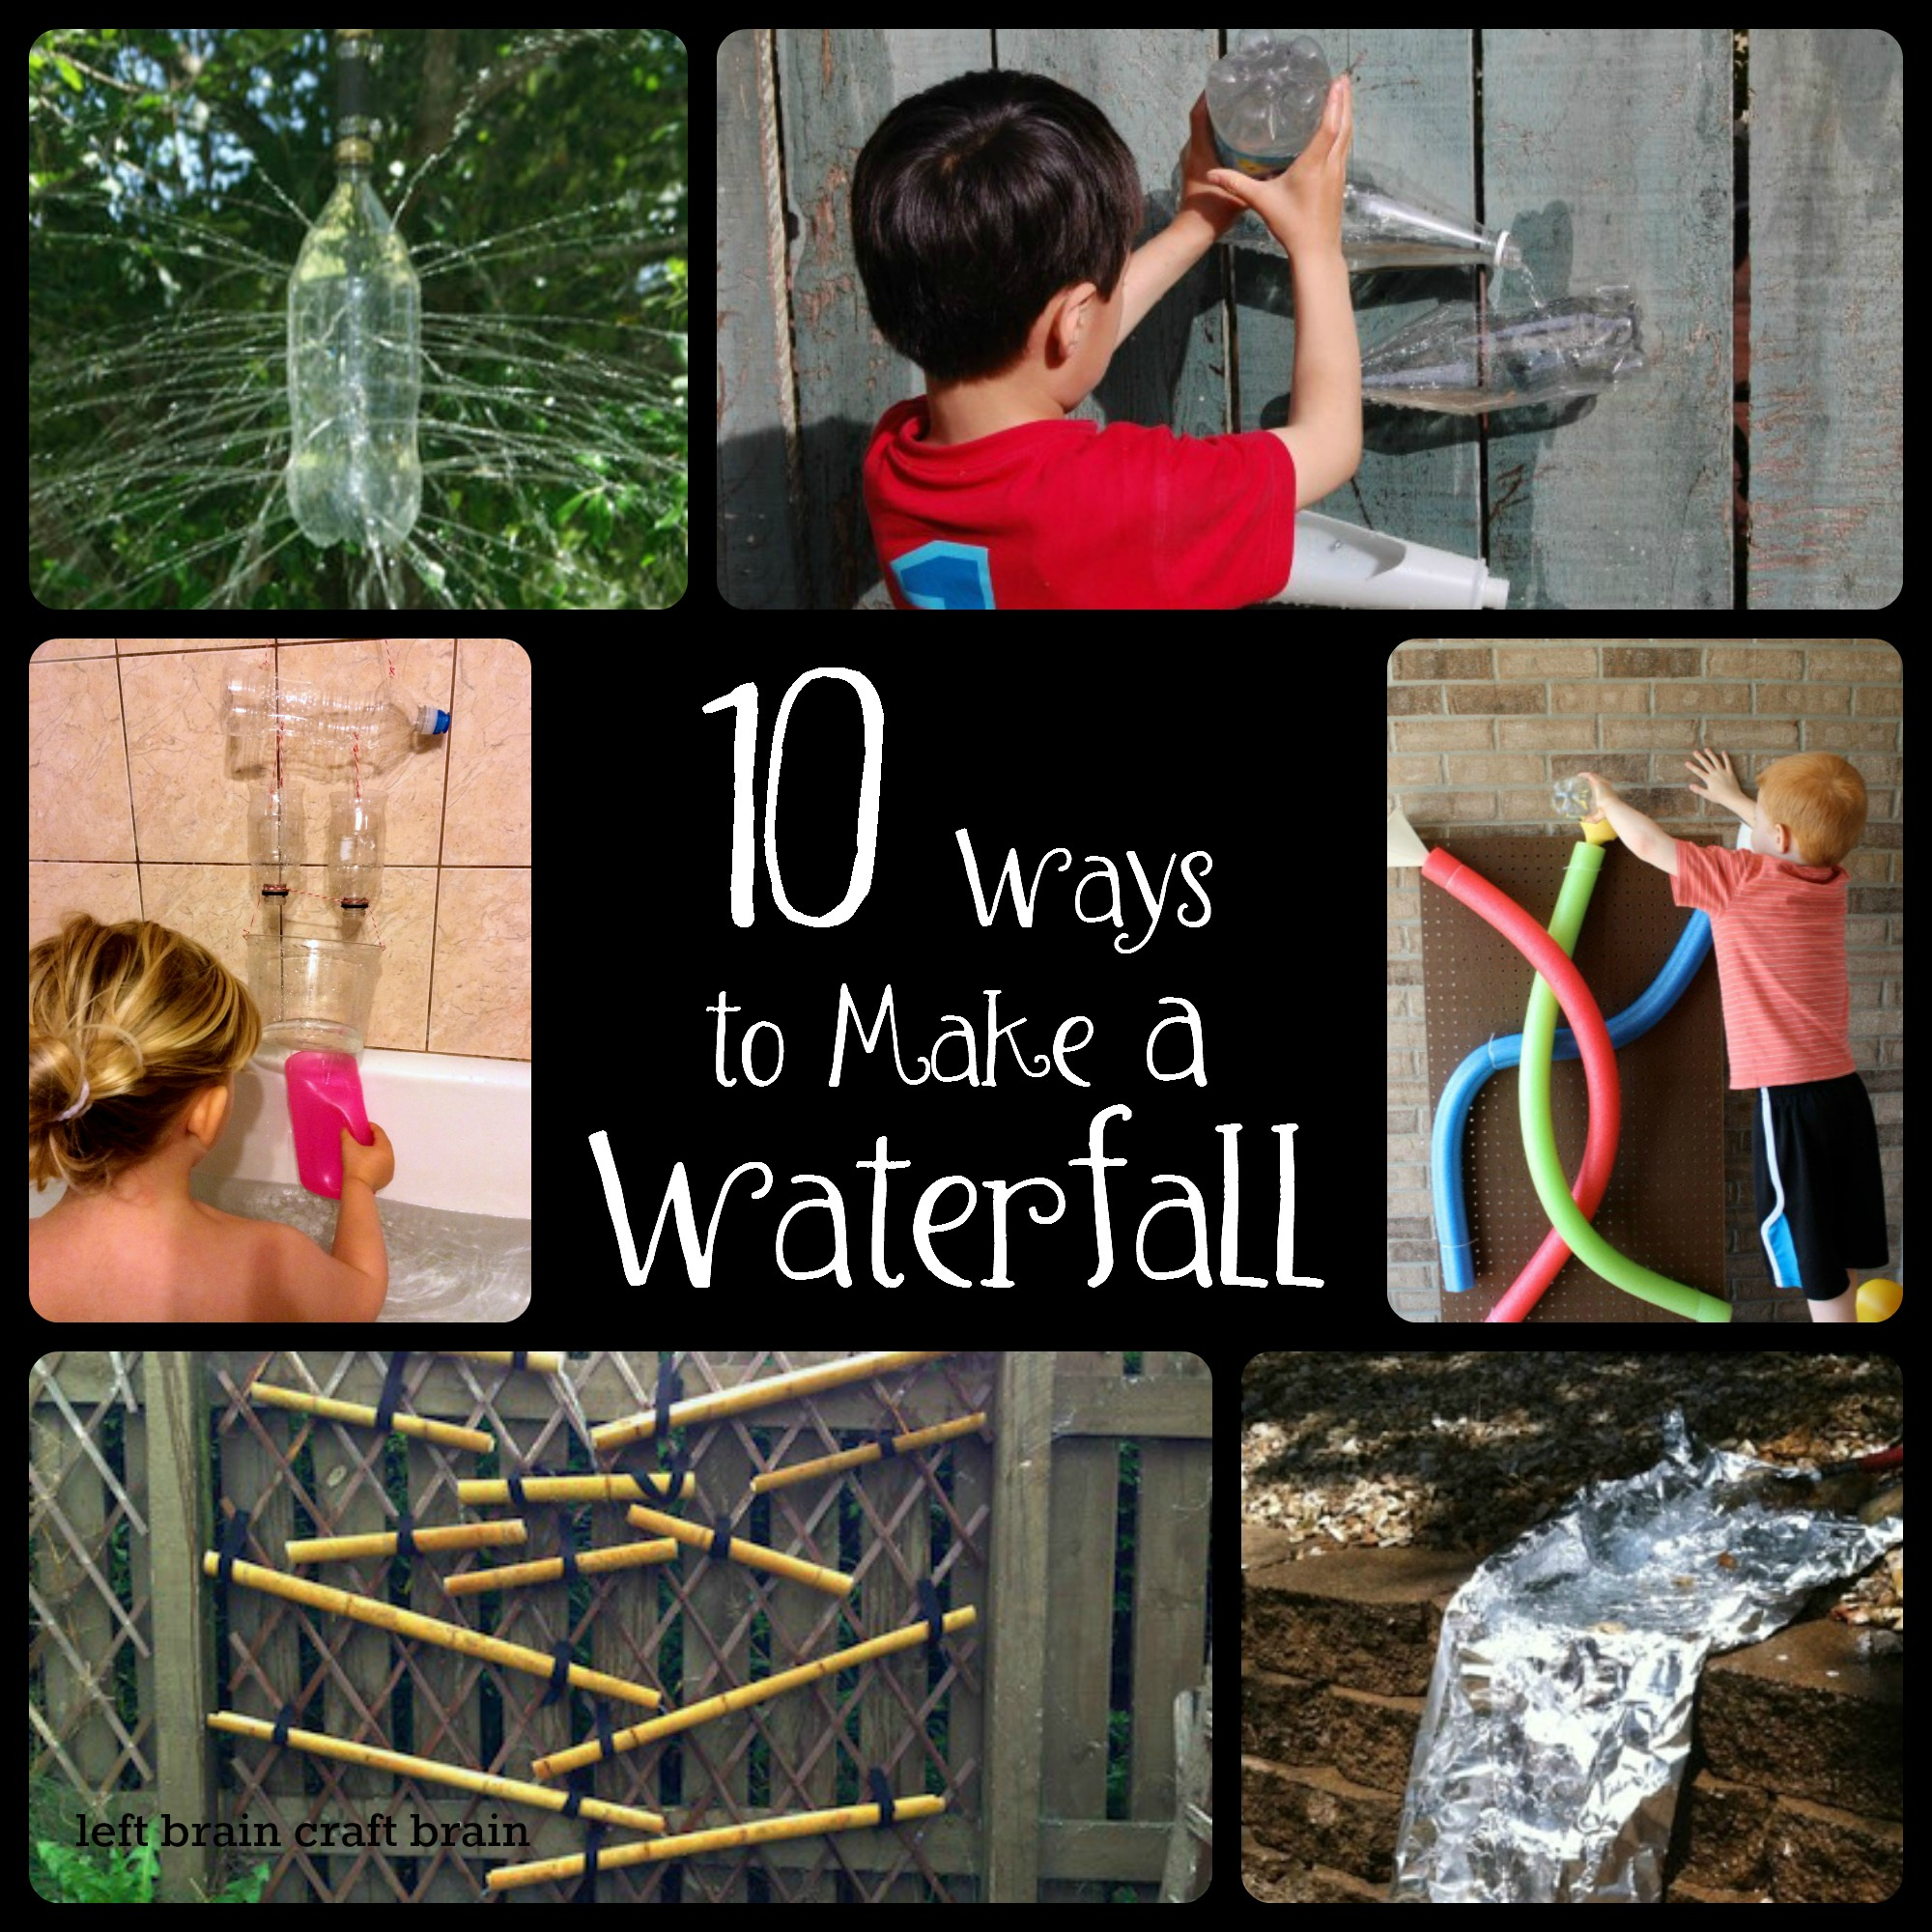 10 ways to make a waterfall left brain craft brain